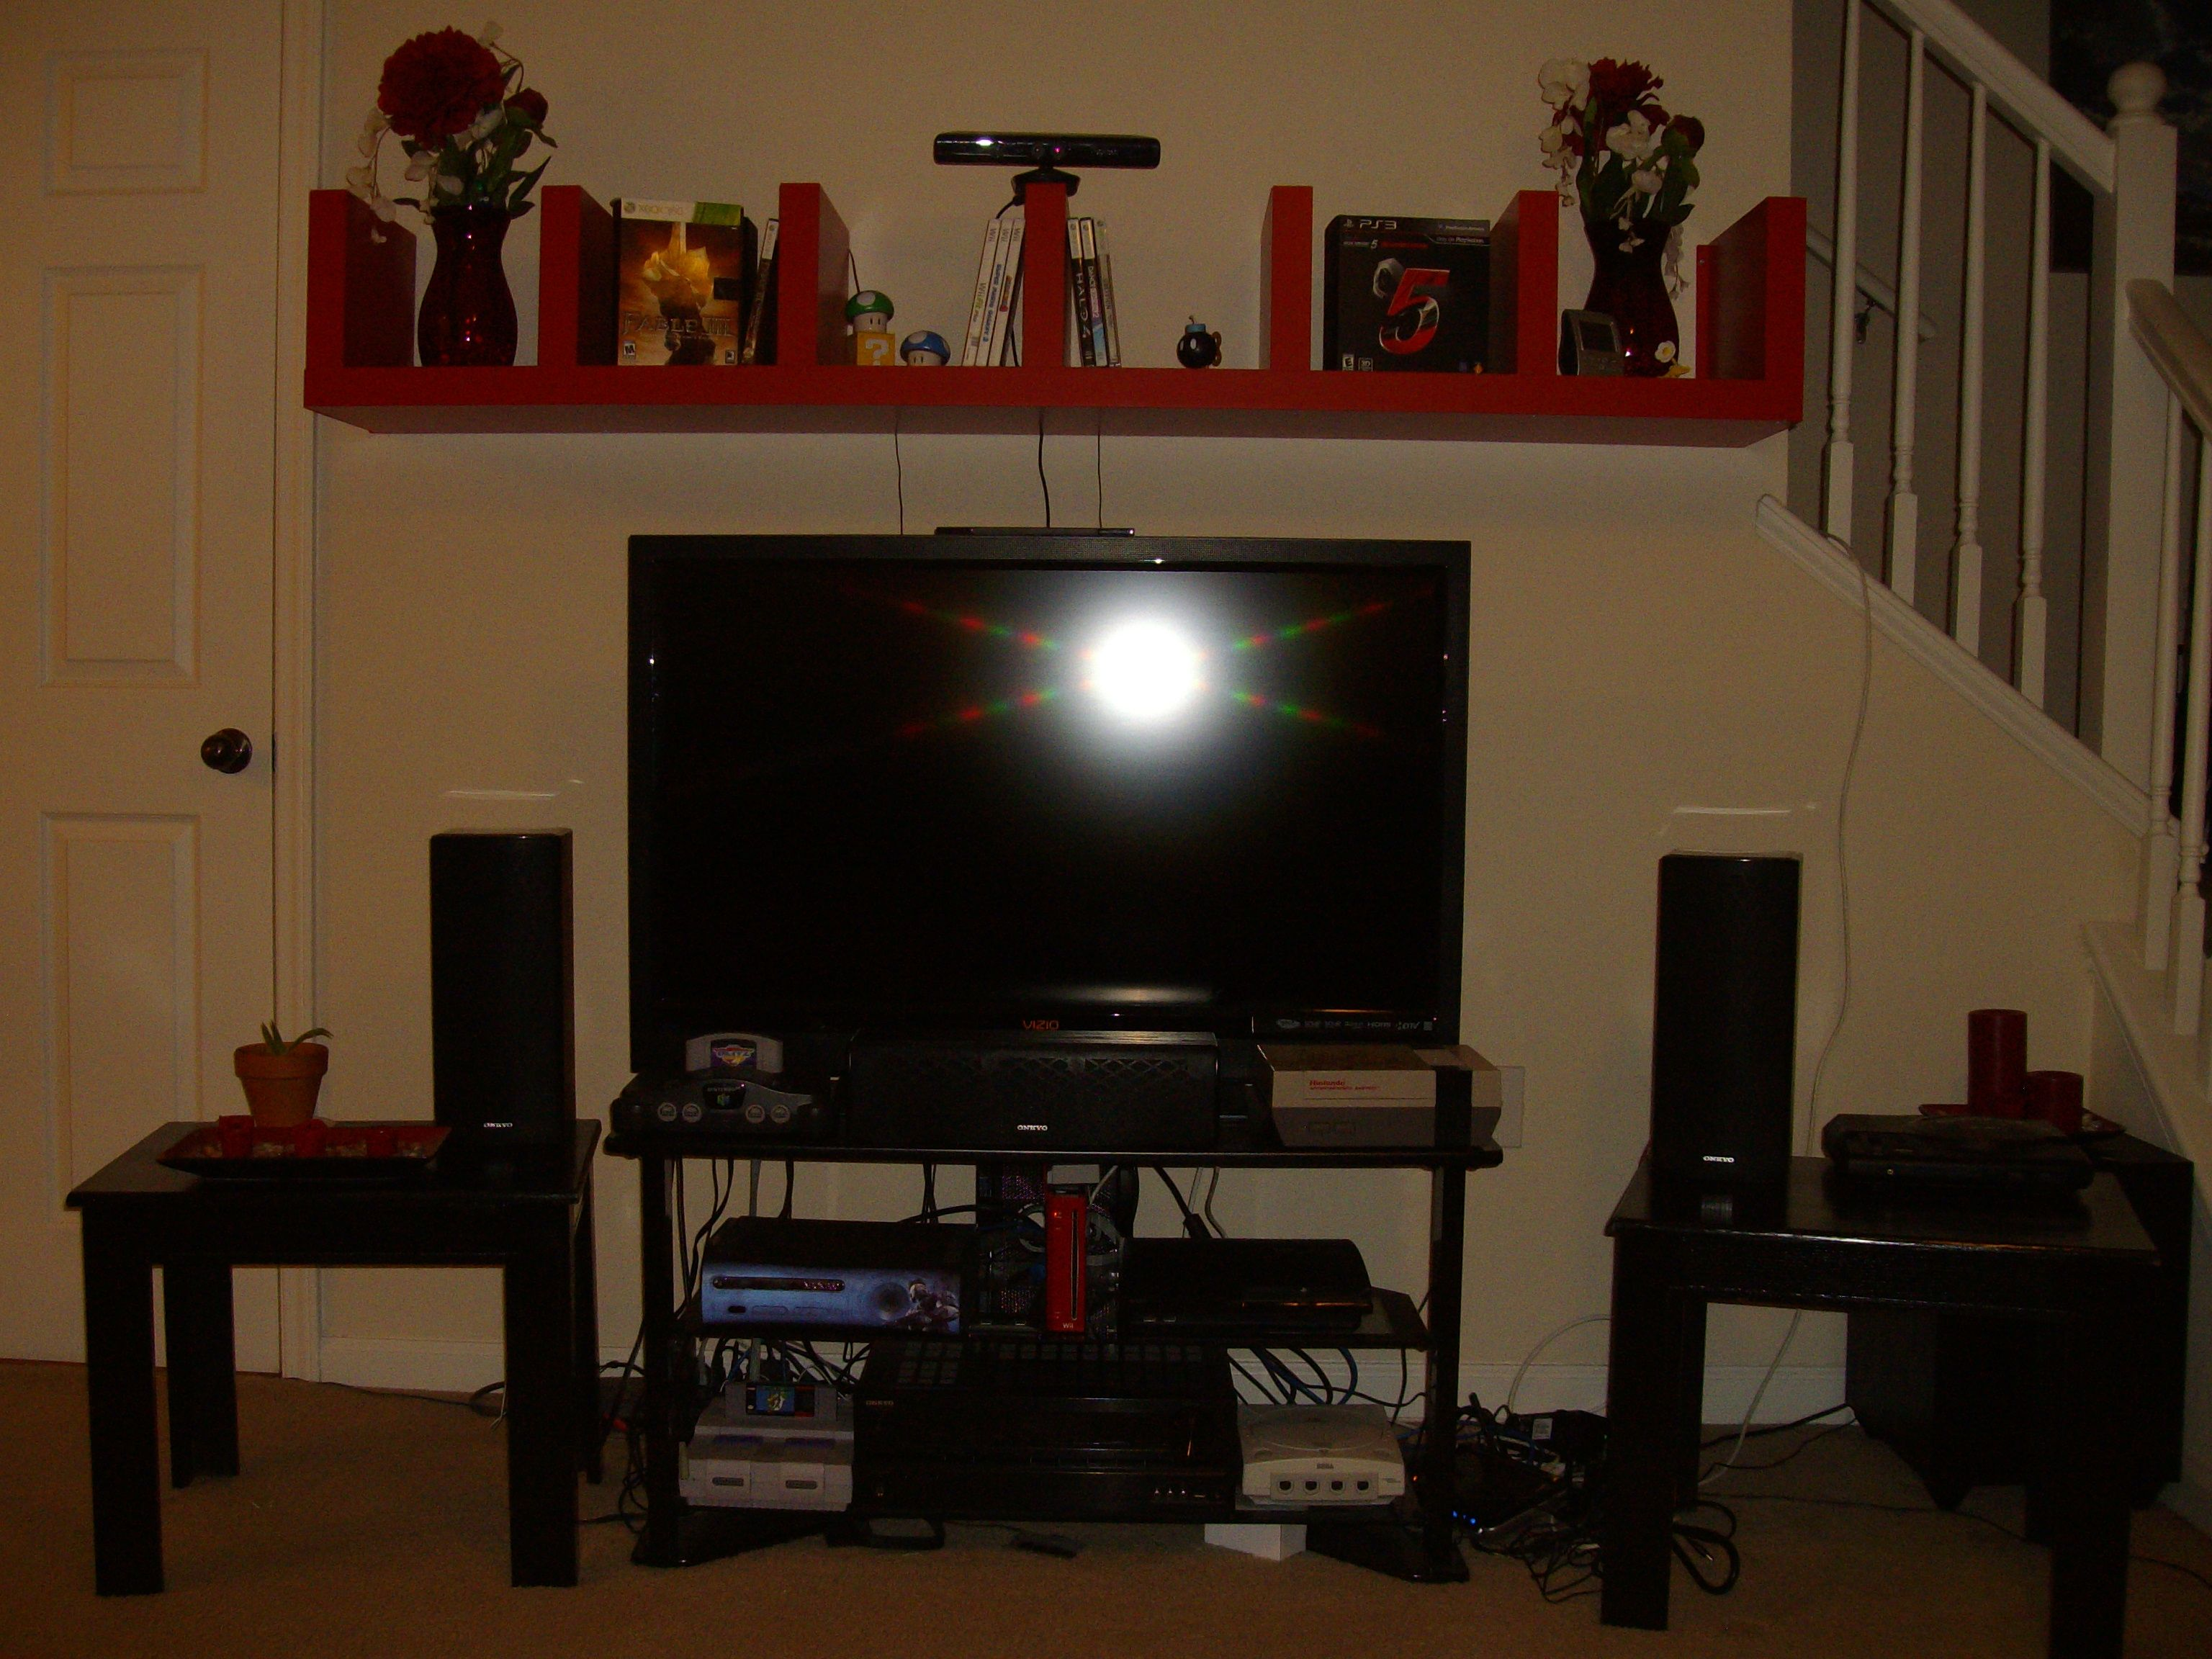 Ikea LACK Wall Shelf Unit Designs2Go Black Glass and Wood TV Stand Mess of